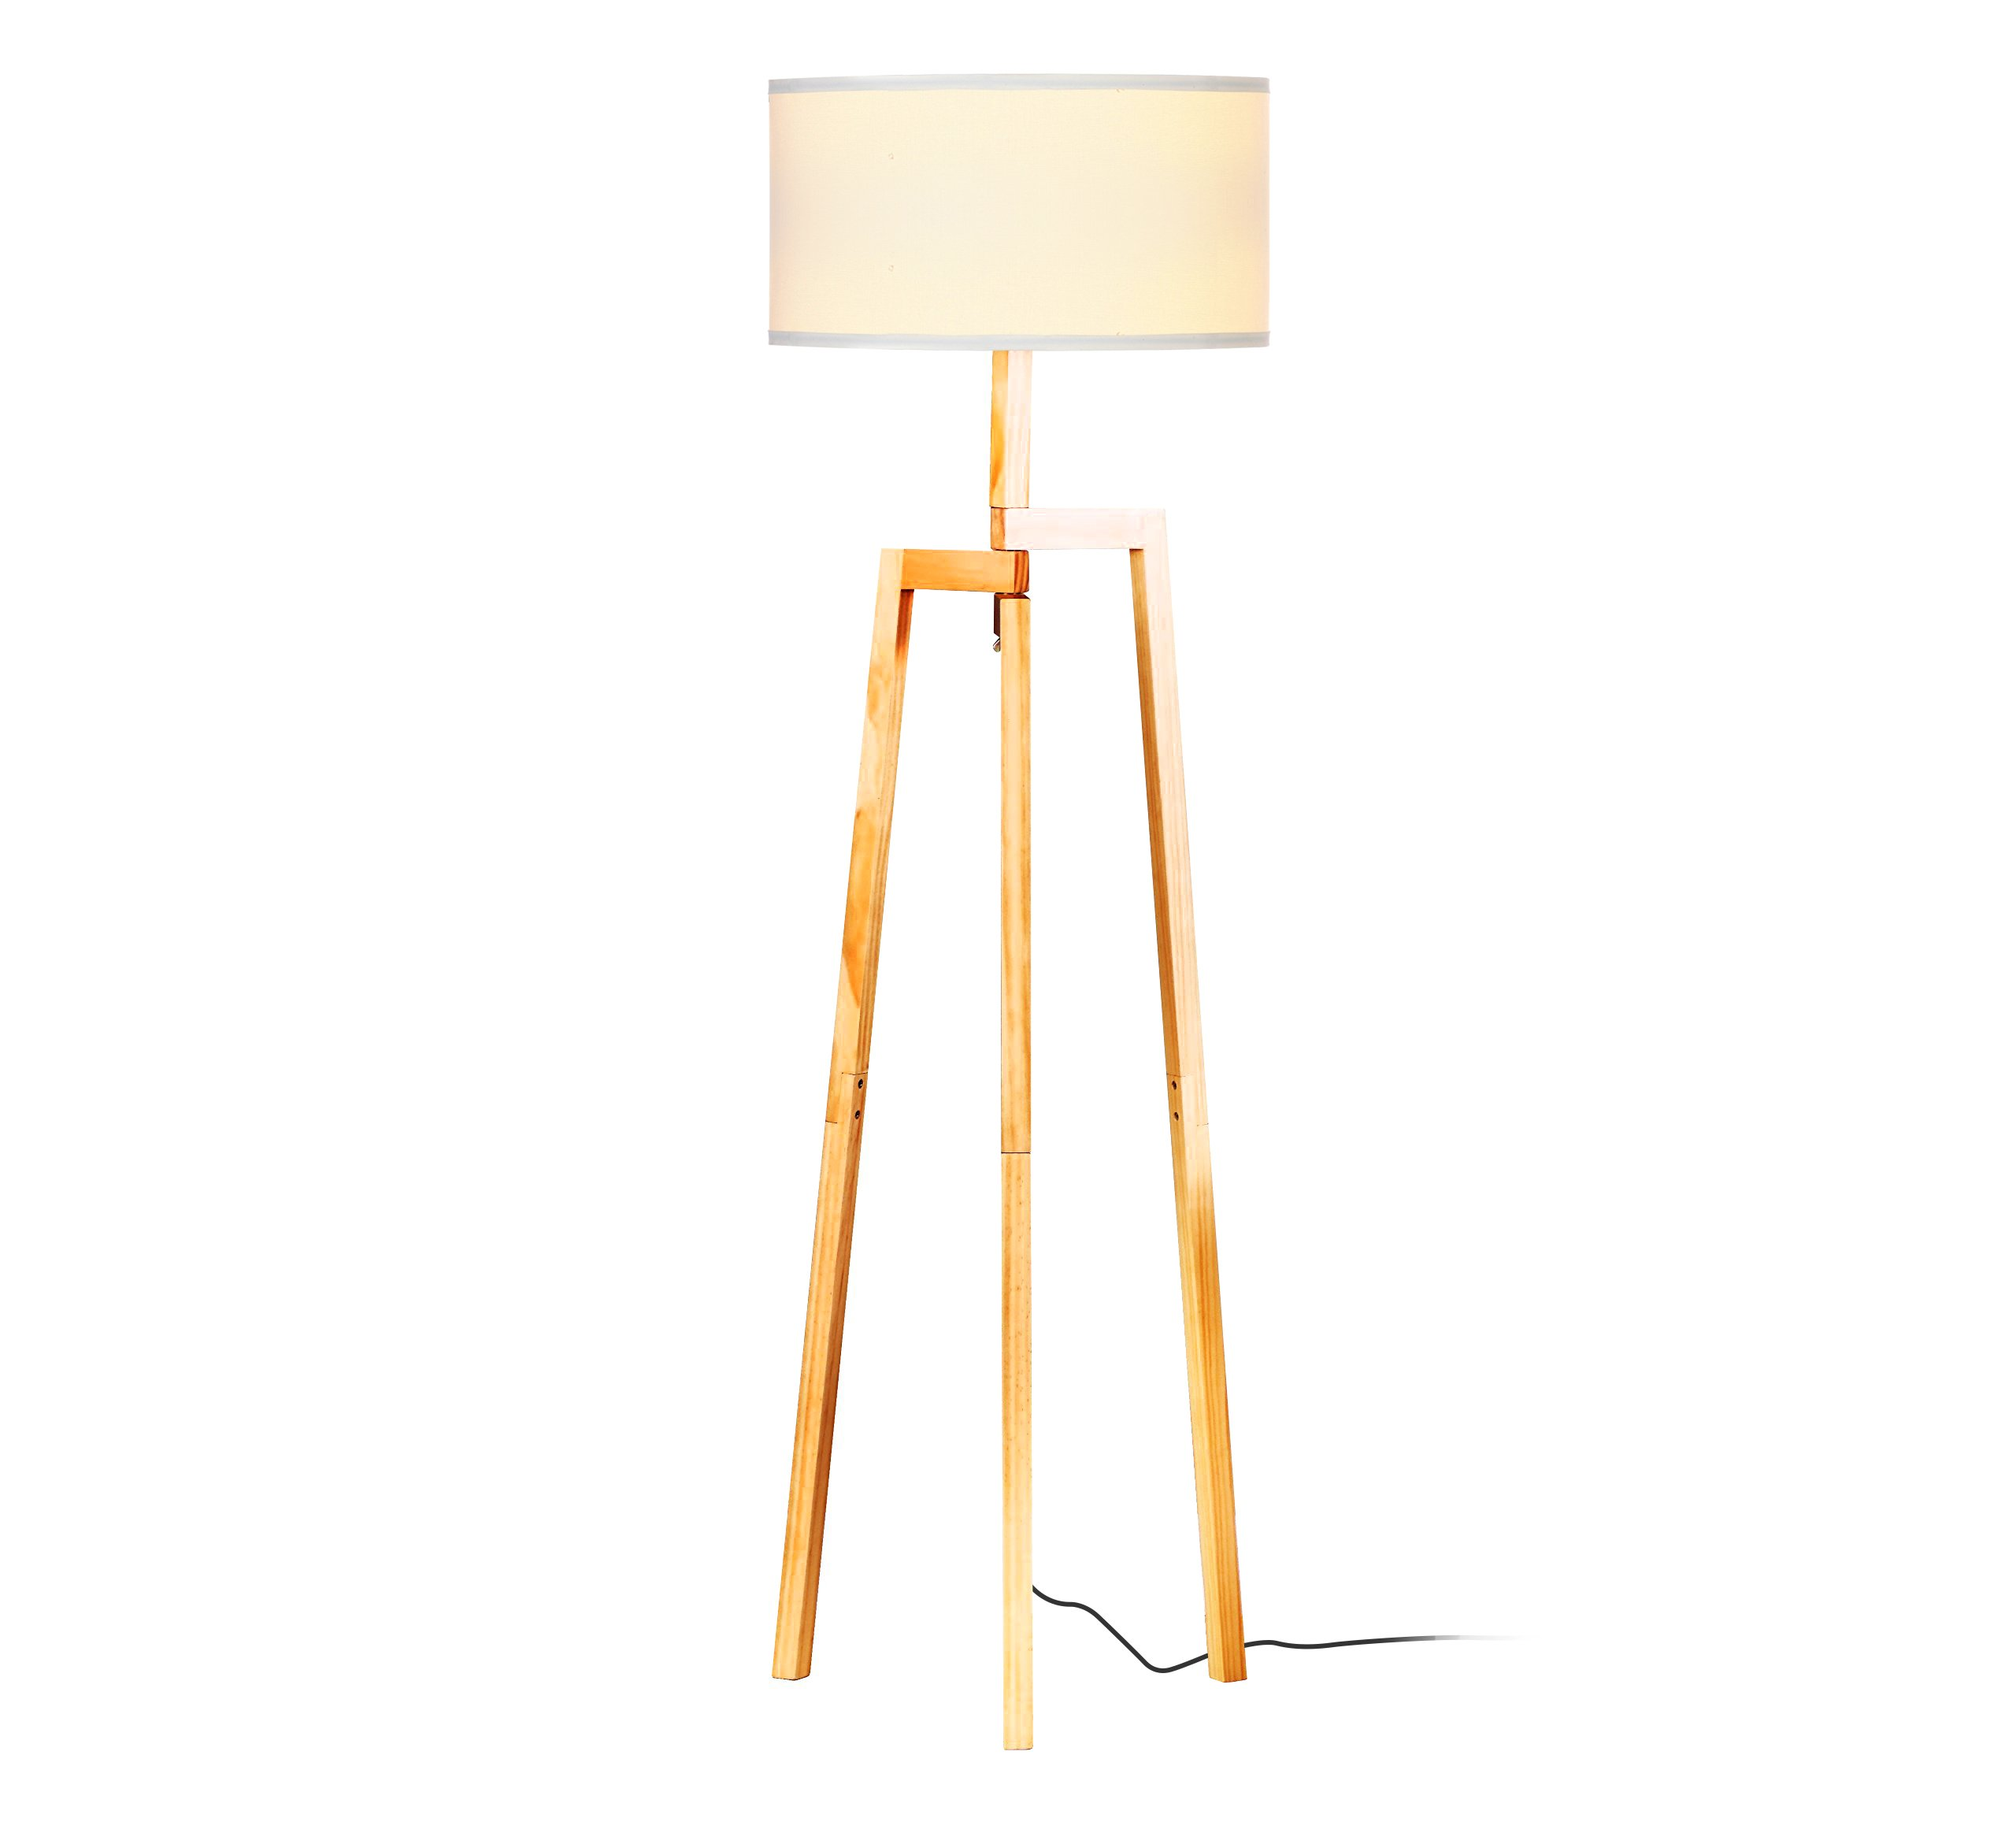 Brightech New Mia LED Tripod Floor Lamp– Modern Design Wood Mid Century Style Lighting for Contemporary Living or Family Rooms- Ambient Light Tall Standing Survey Lamp for Bedroom, Office- White Shade by Brightech (Image #1)